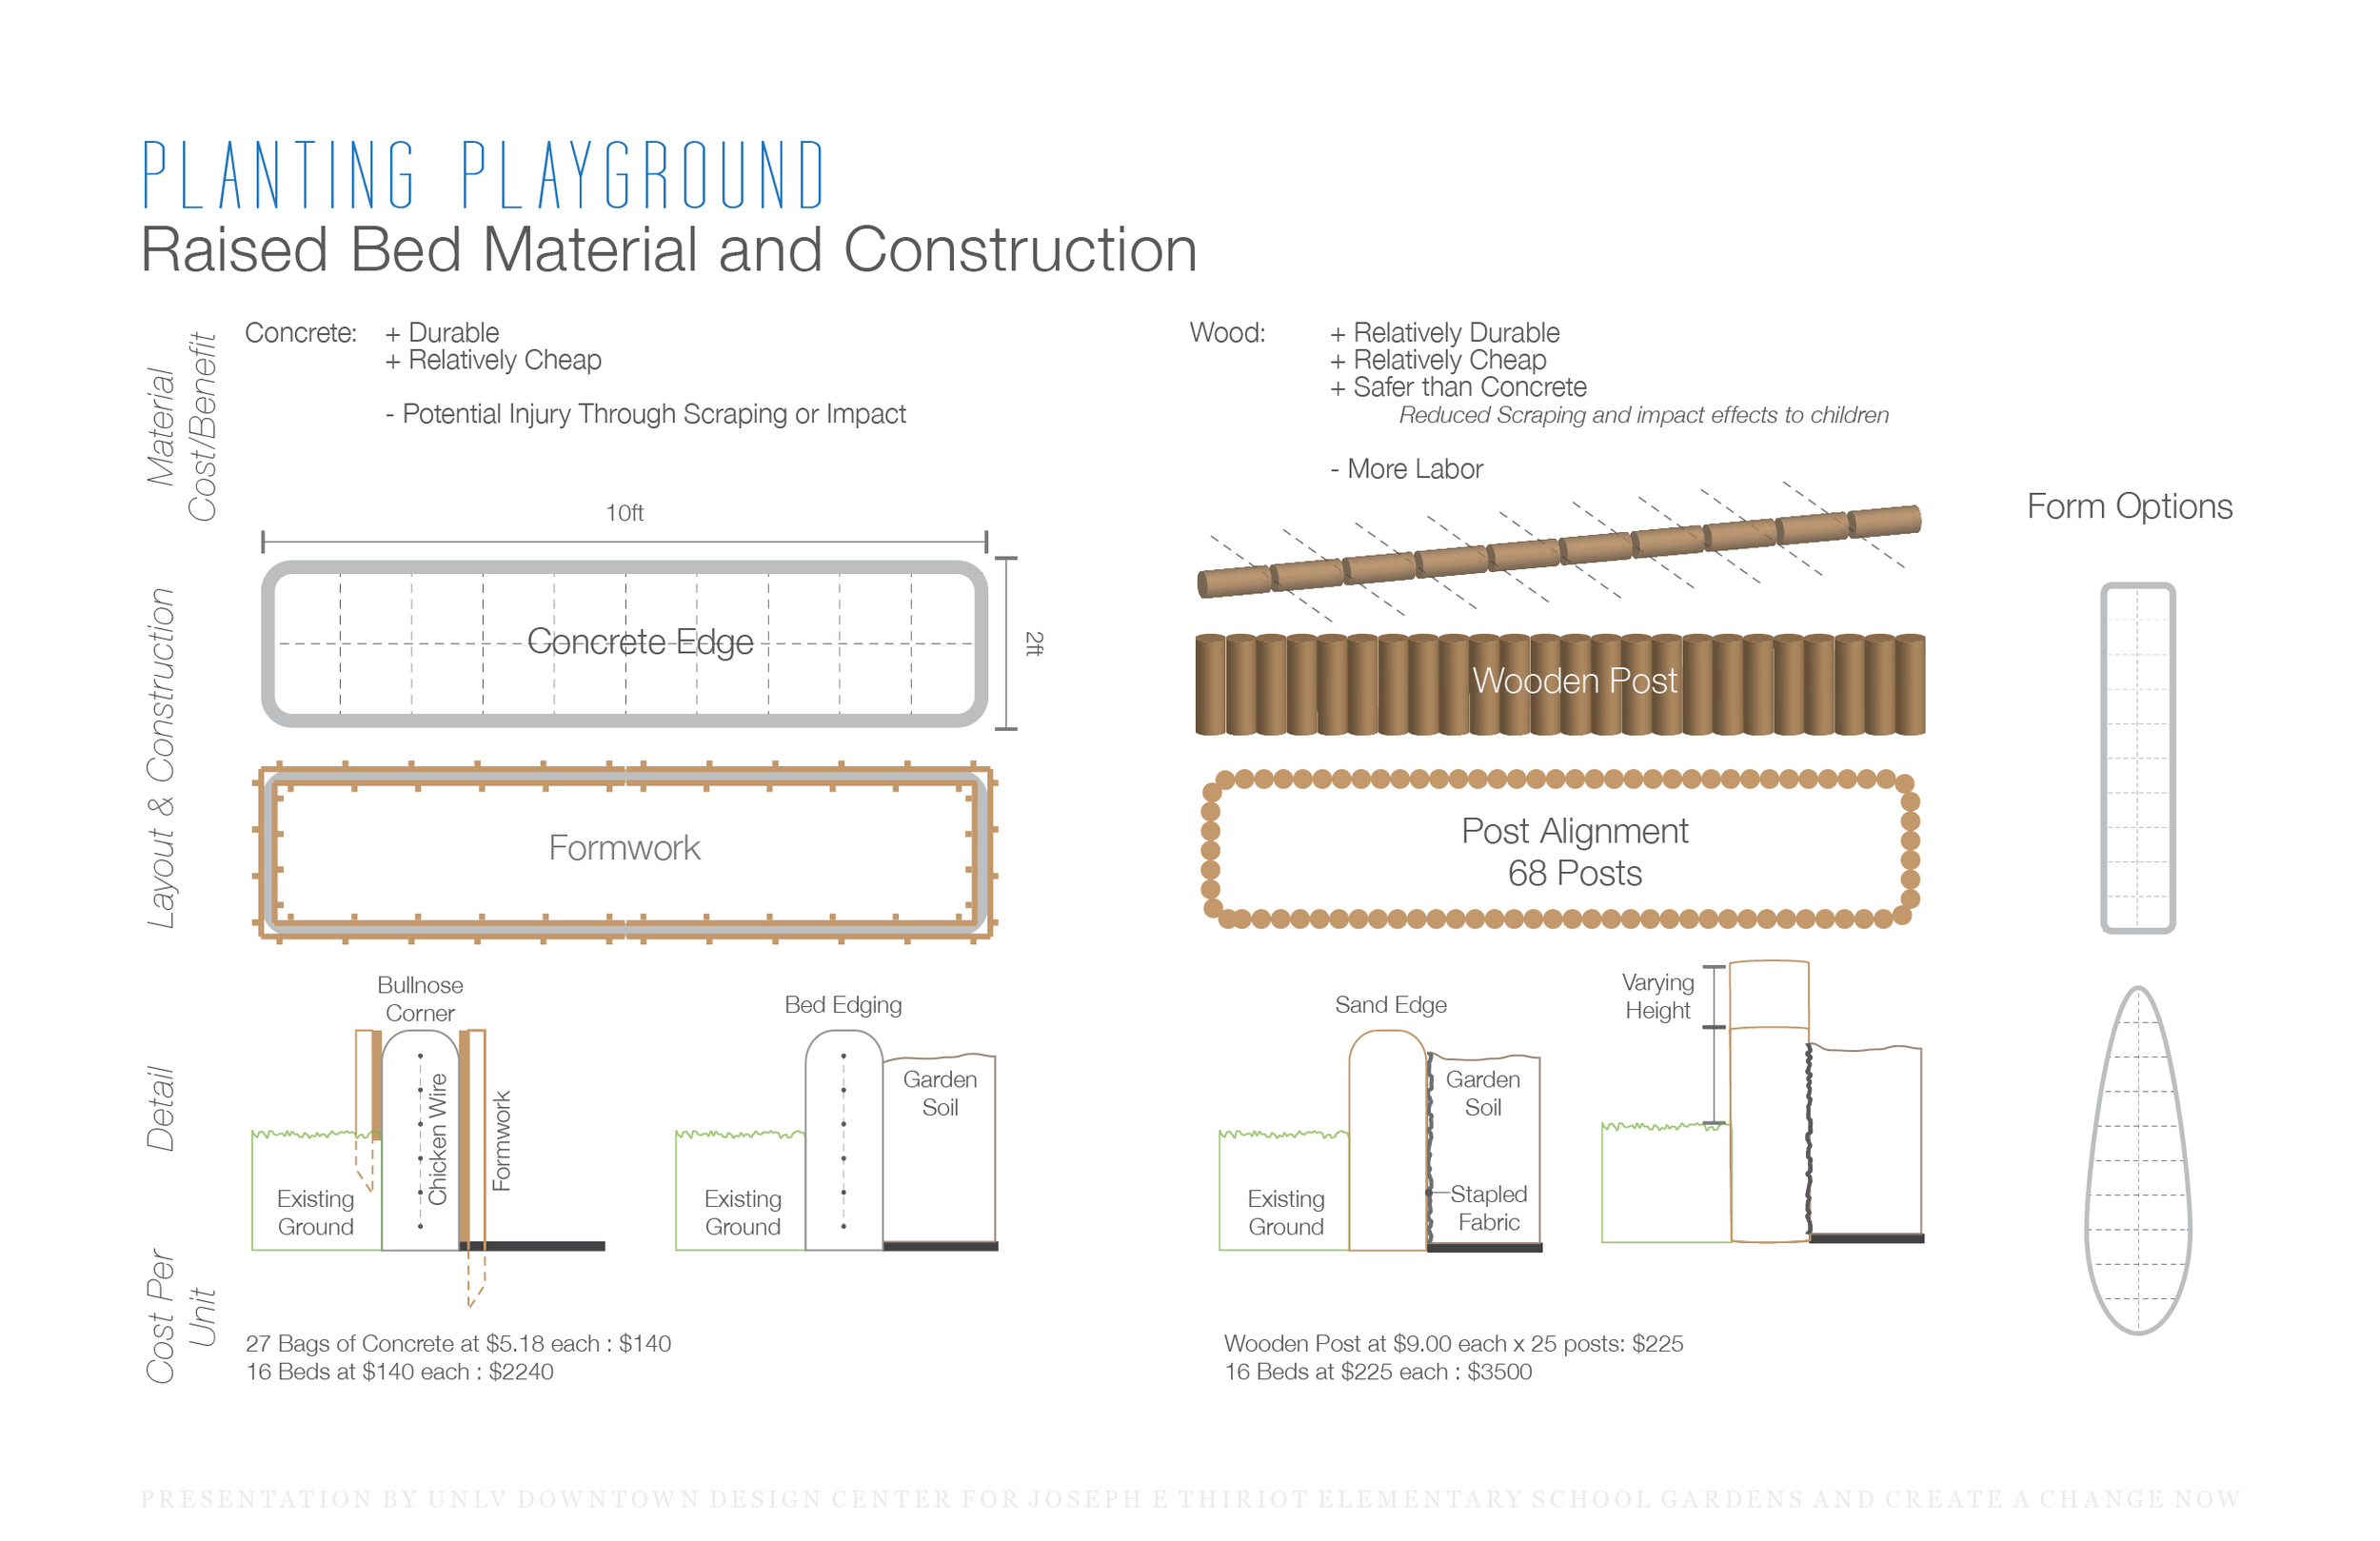 Construction and cost estimation of planters in the playground - optimizing safety and cost.